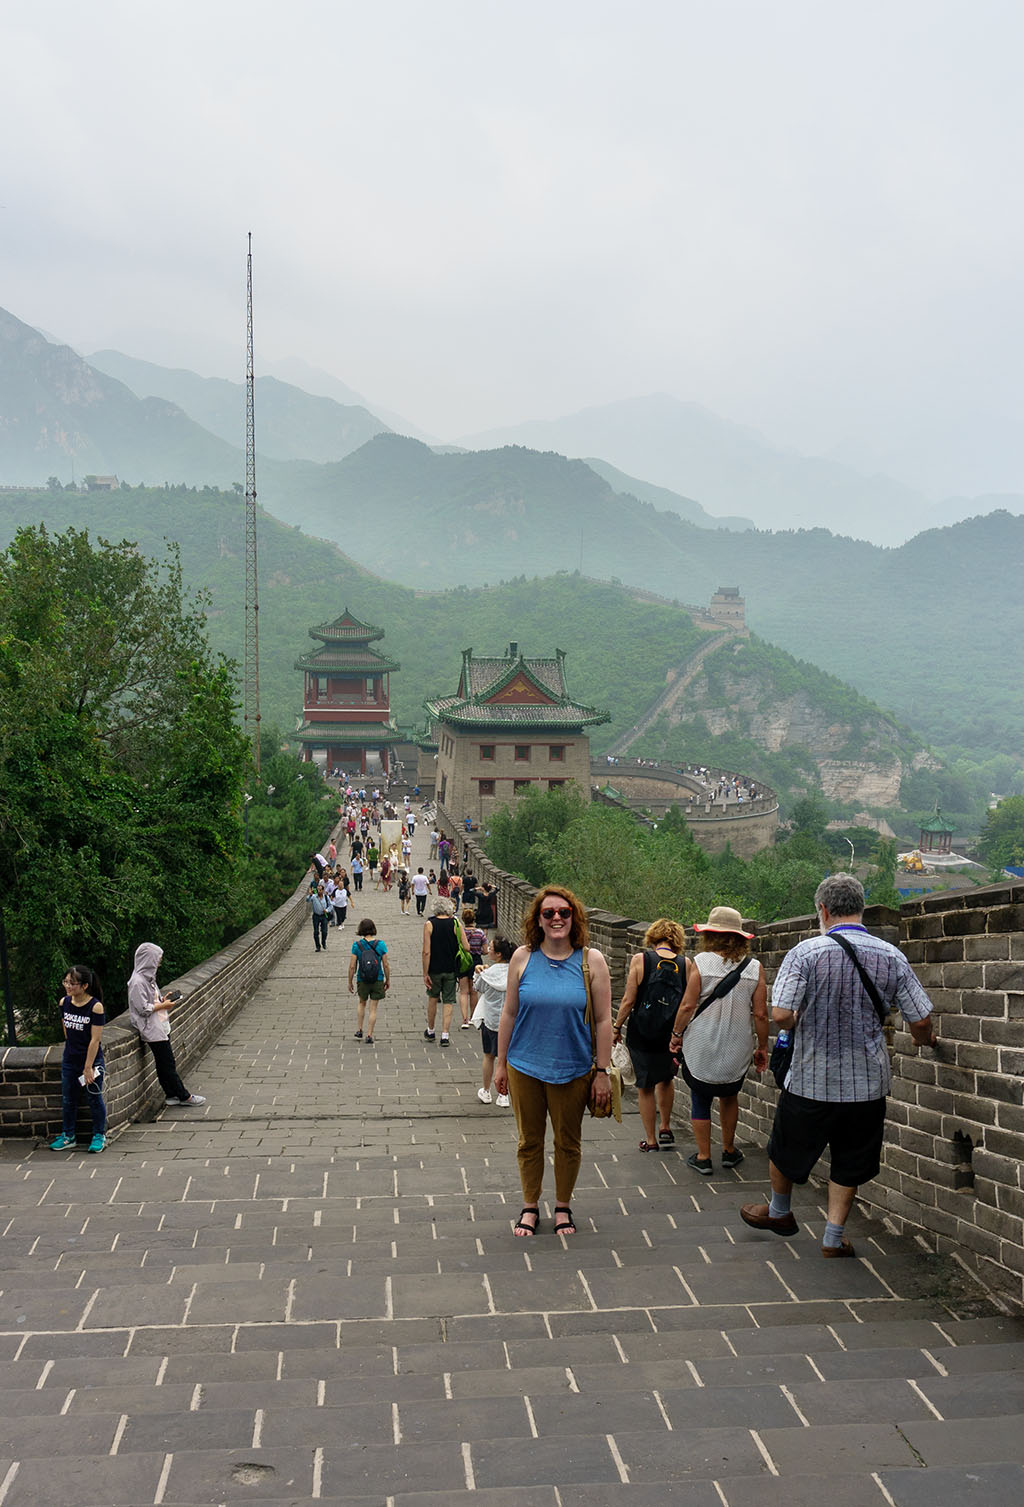 Visiting the Great Wall of China Juyong Pass 13.The Food Girl in Town